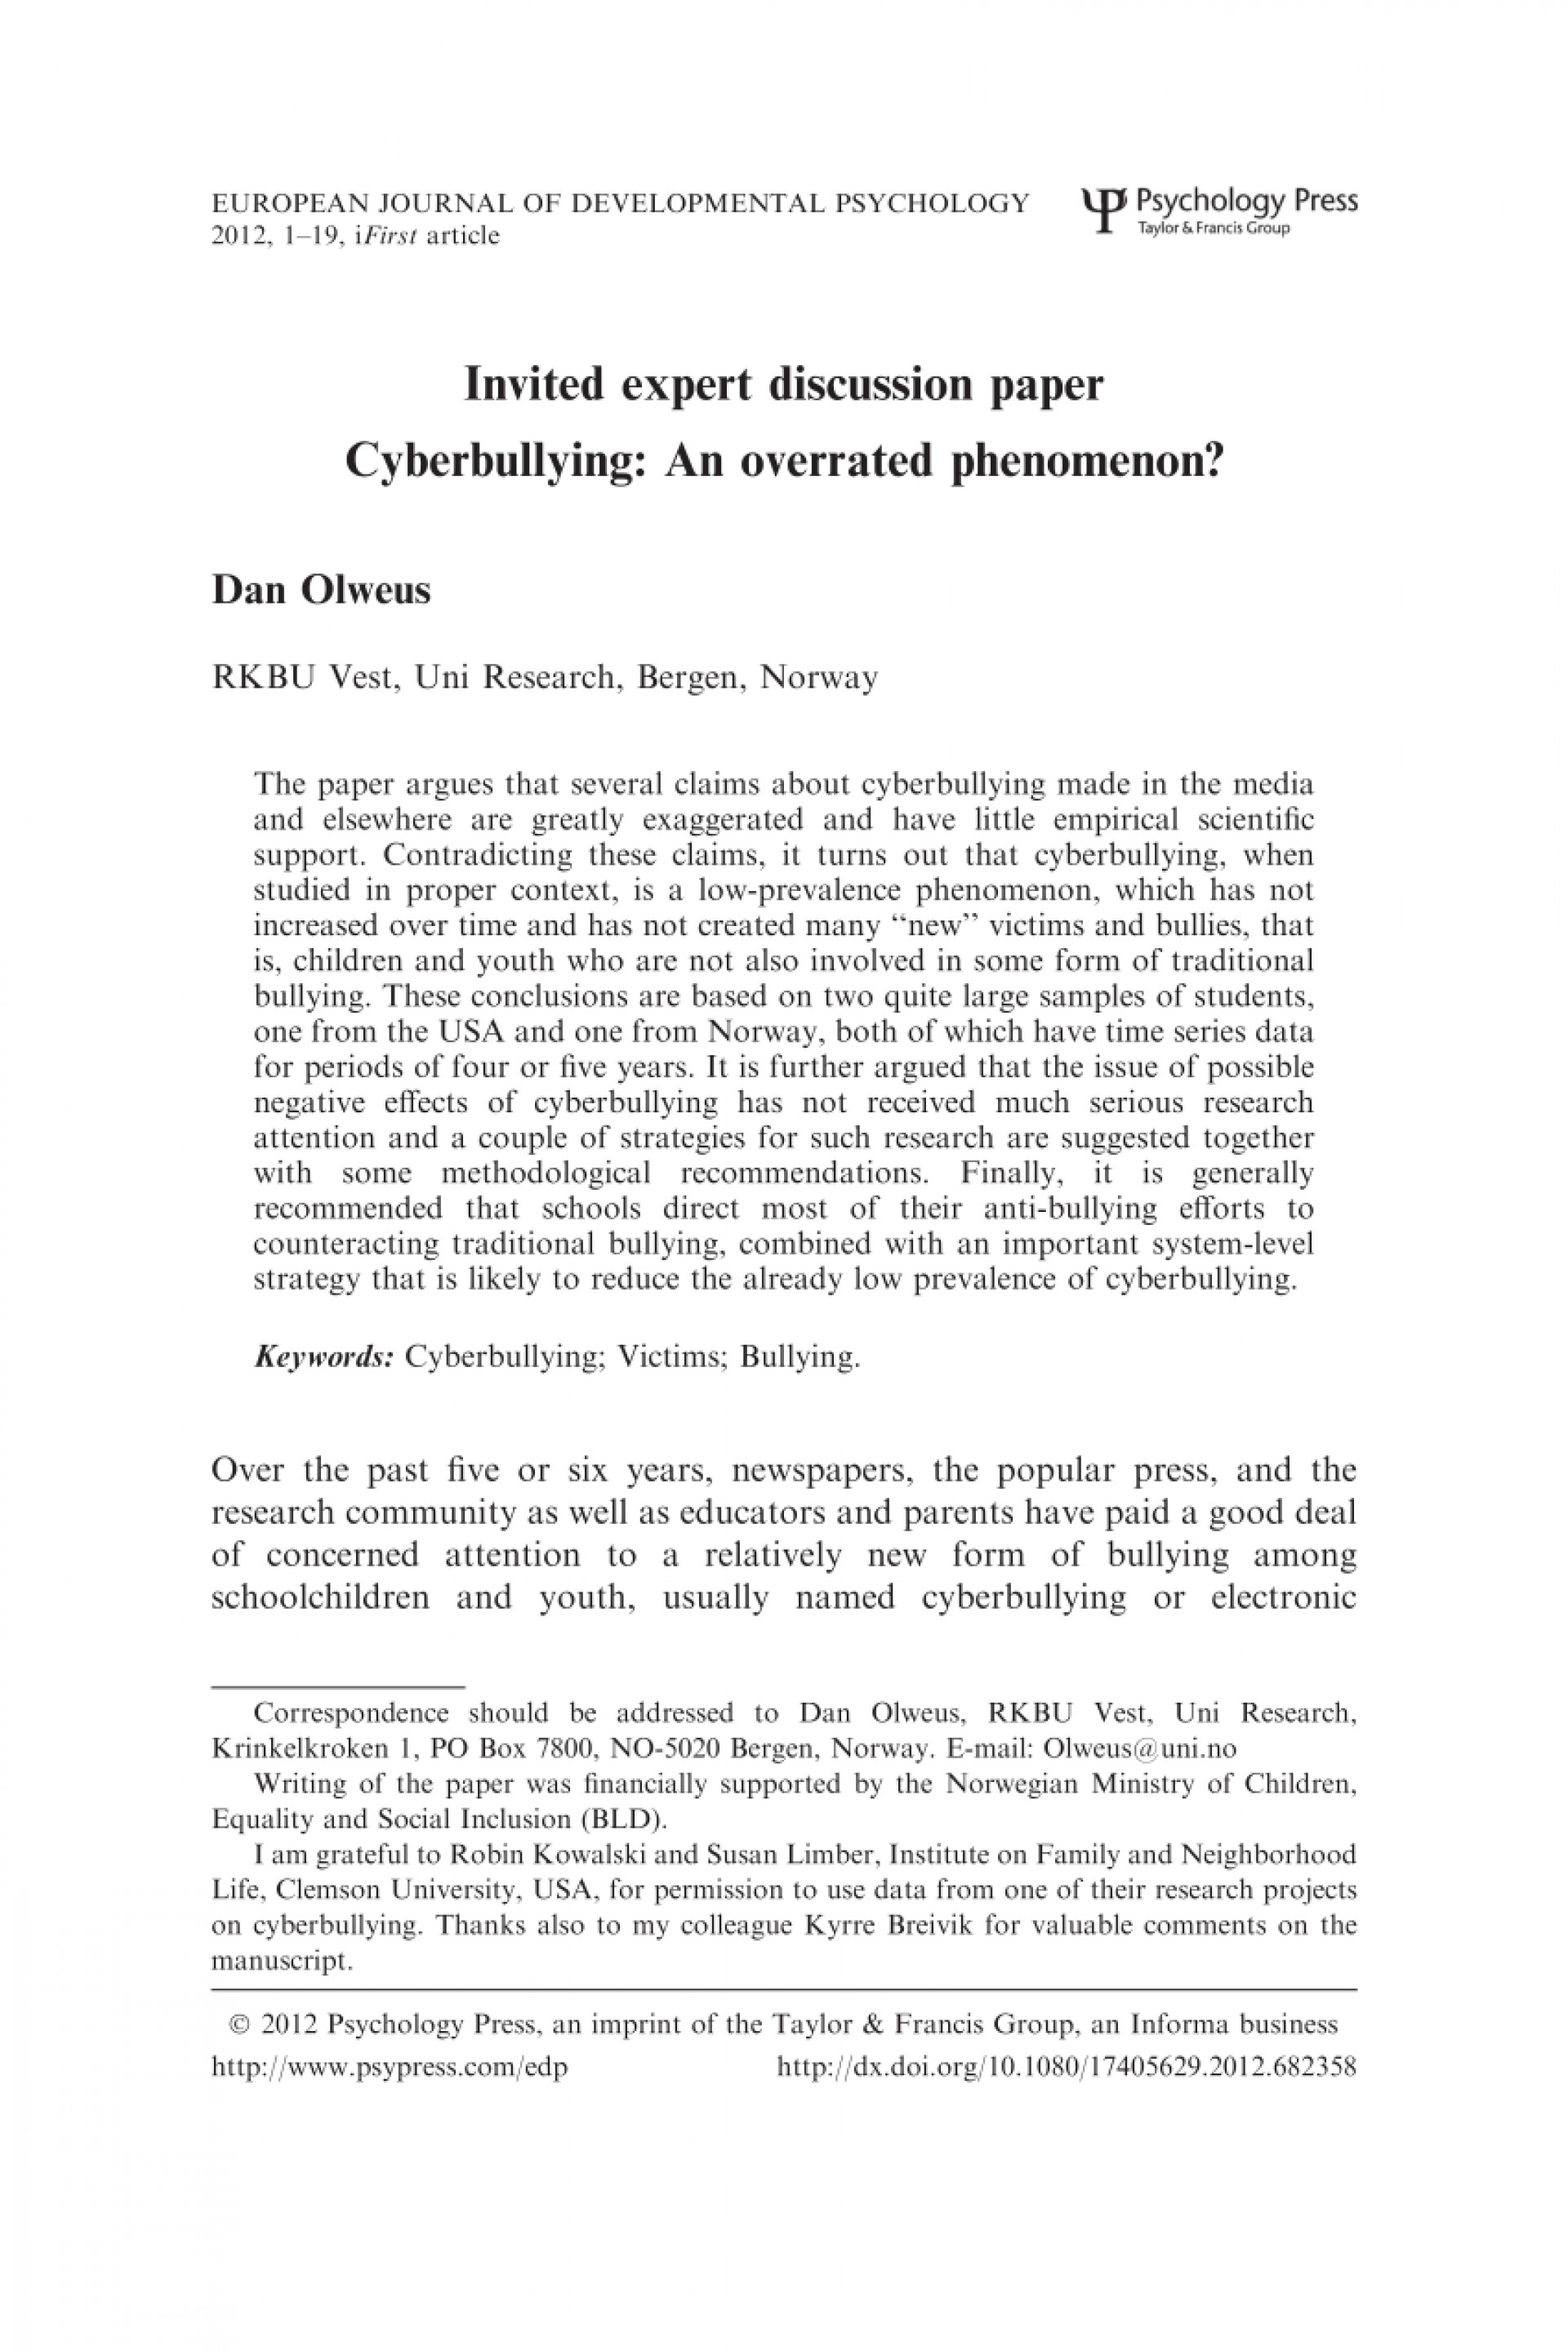 004 Research Paper Largepreview Cyber Phenomenal Bullying Cyberbullying Chapter 1 Pdf 1920